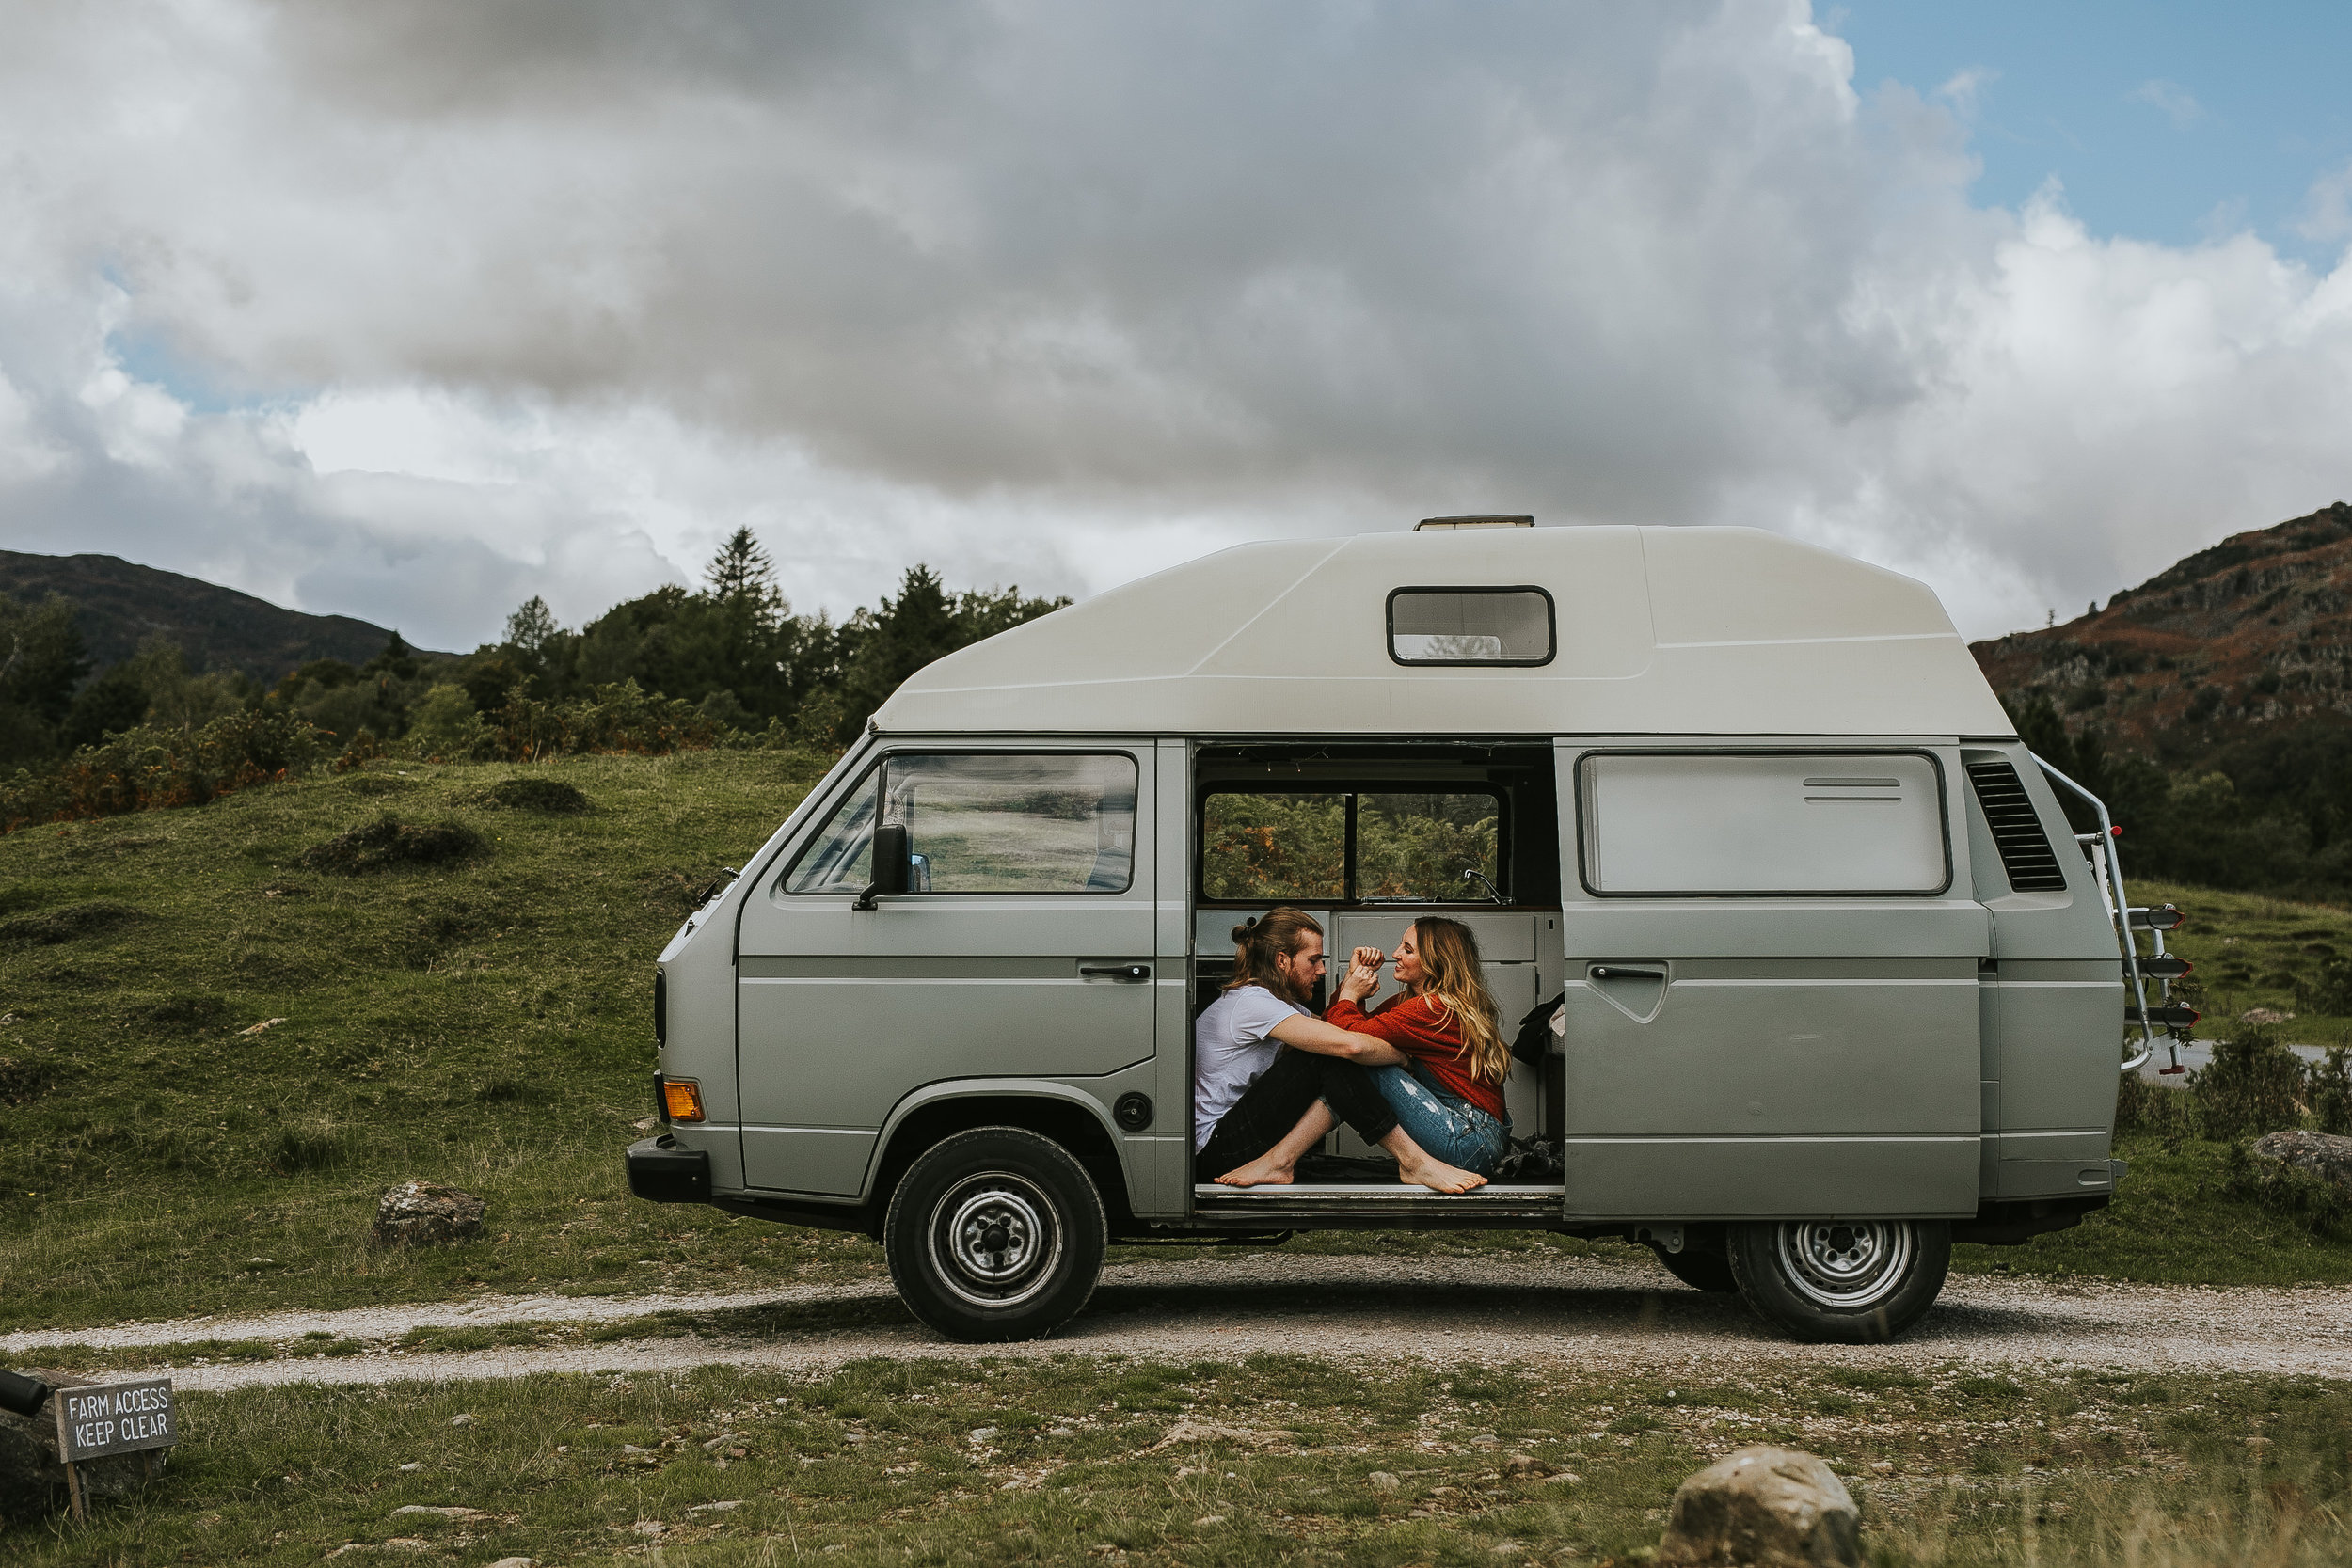 Lake district camper van pre wedding shoot.jpg